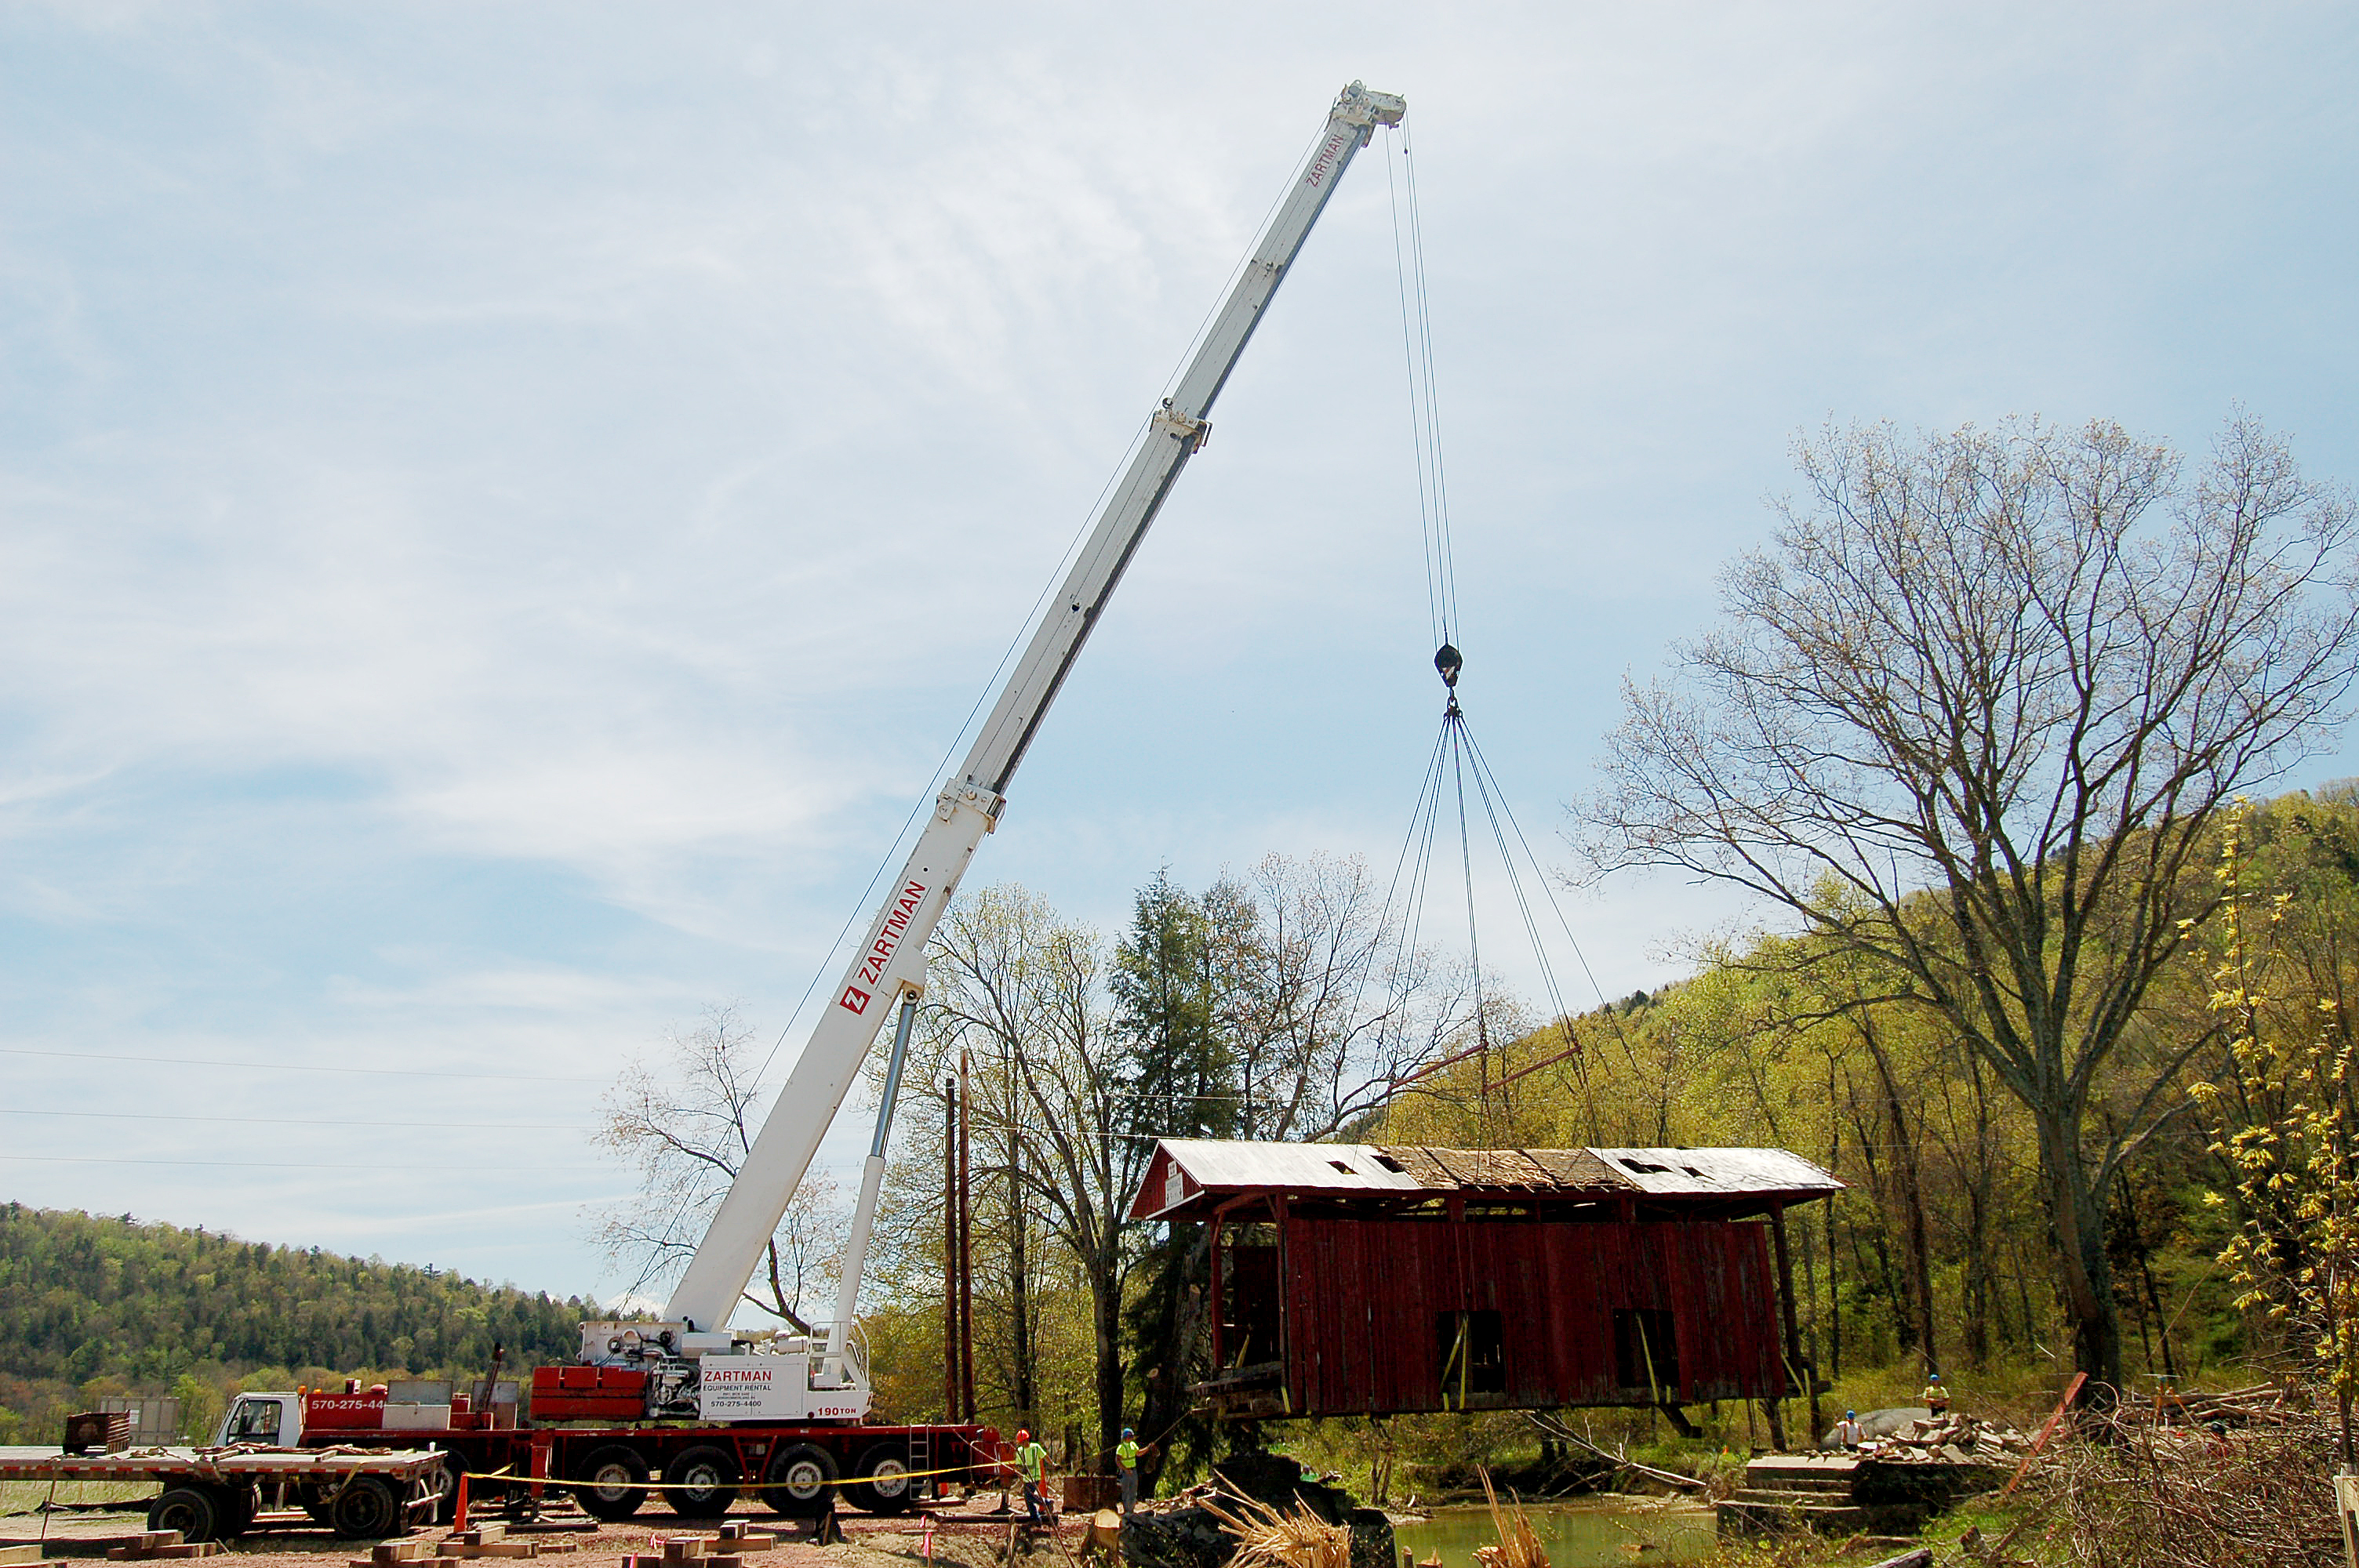 A covered bridge is lifted off its supports and placed on a trailer bed.